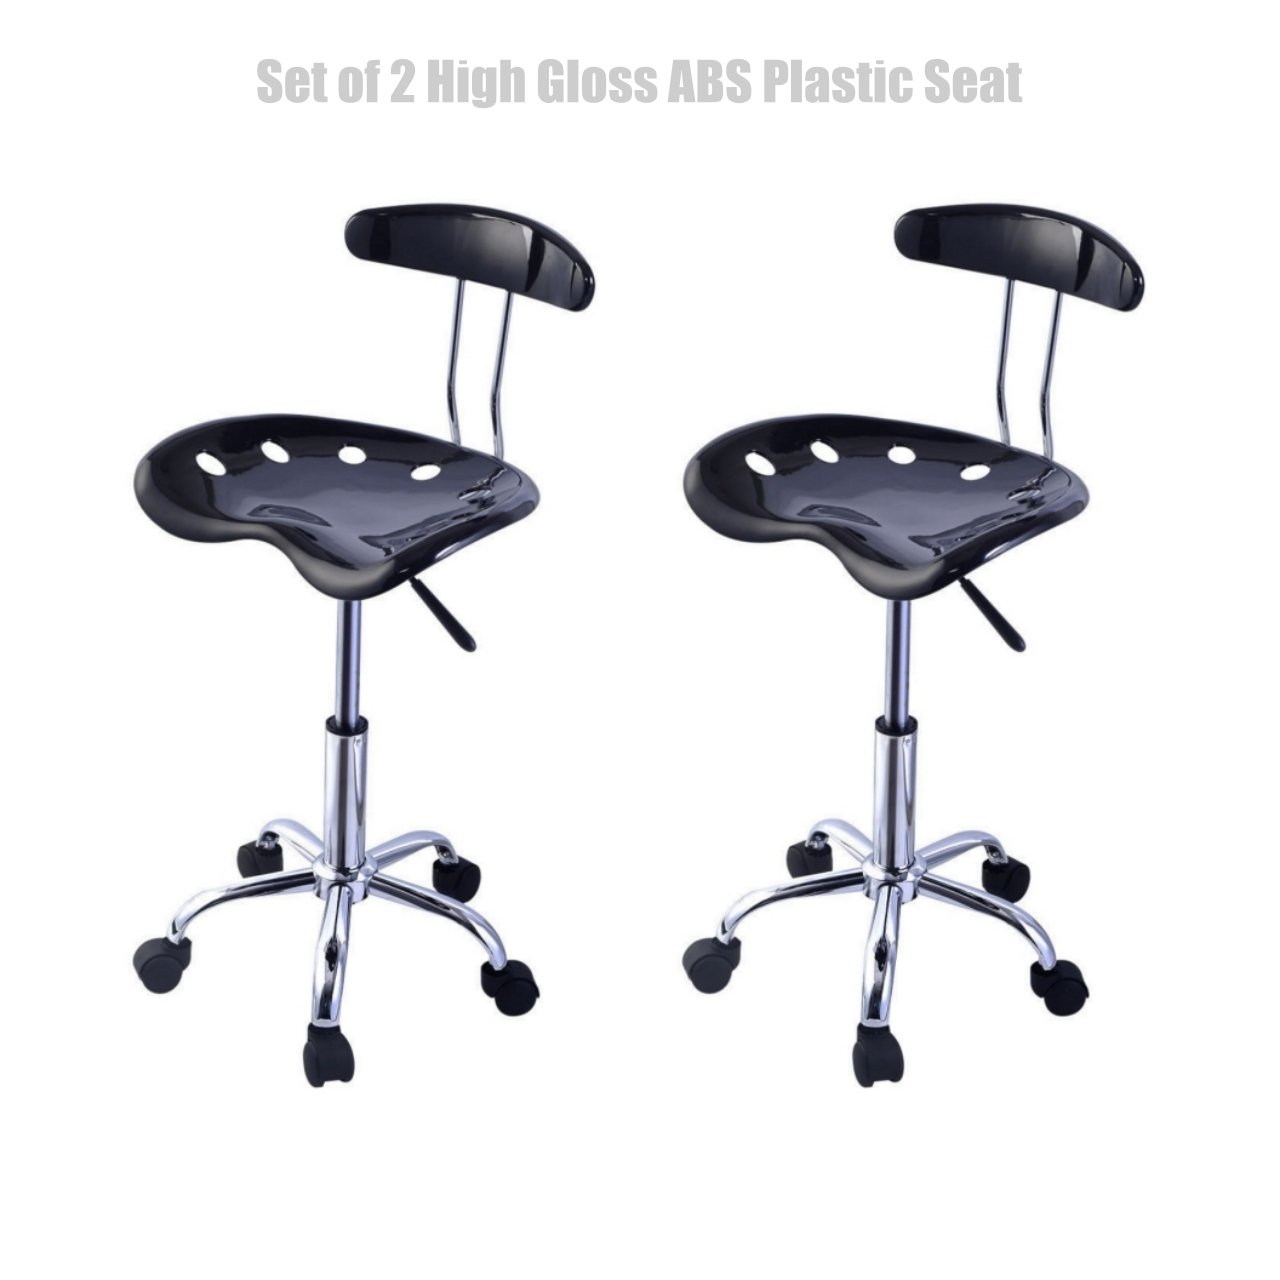 Modern Style Durable Molded ABS Plastic Seat Adjustable Bar Stools Swivel Drafting Dining Chair Solid Chrome Finish Base - Set of 2 Black #1477